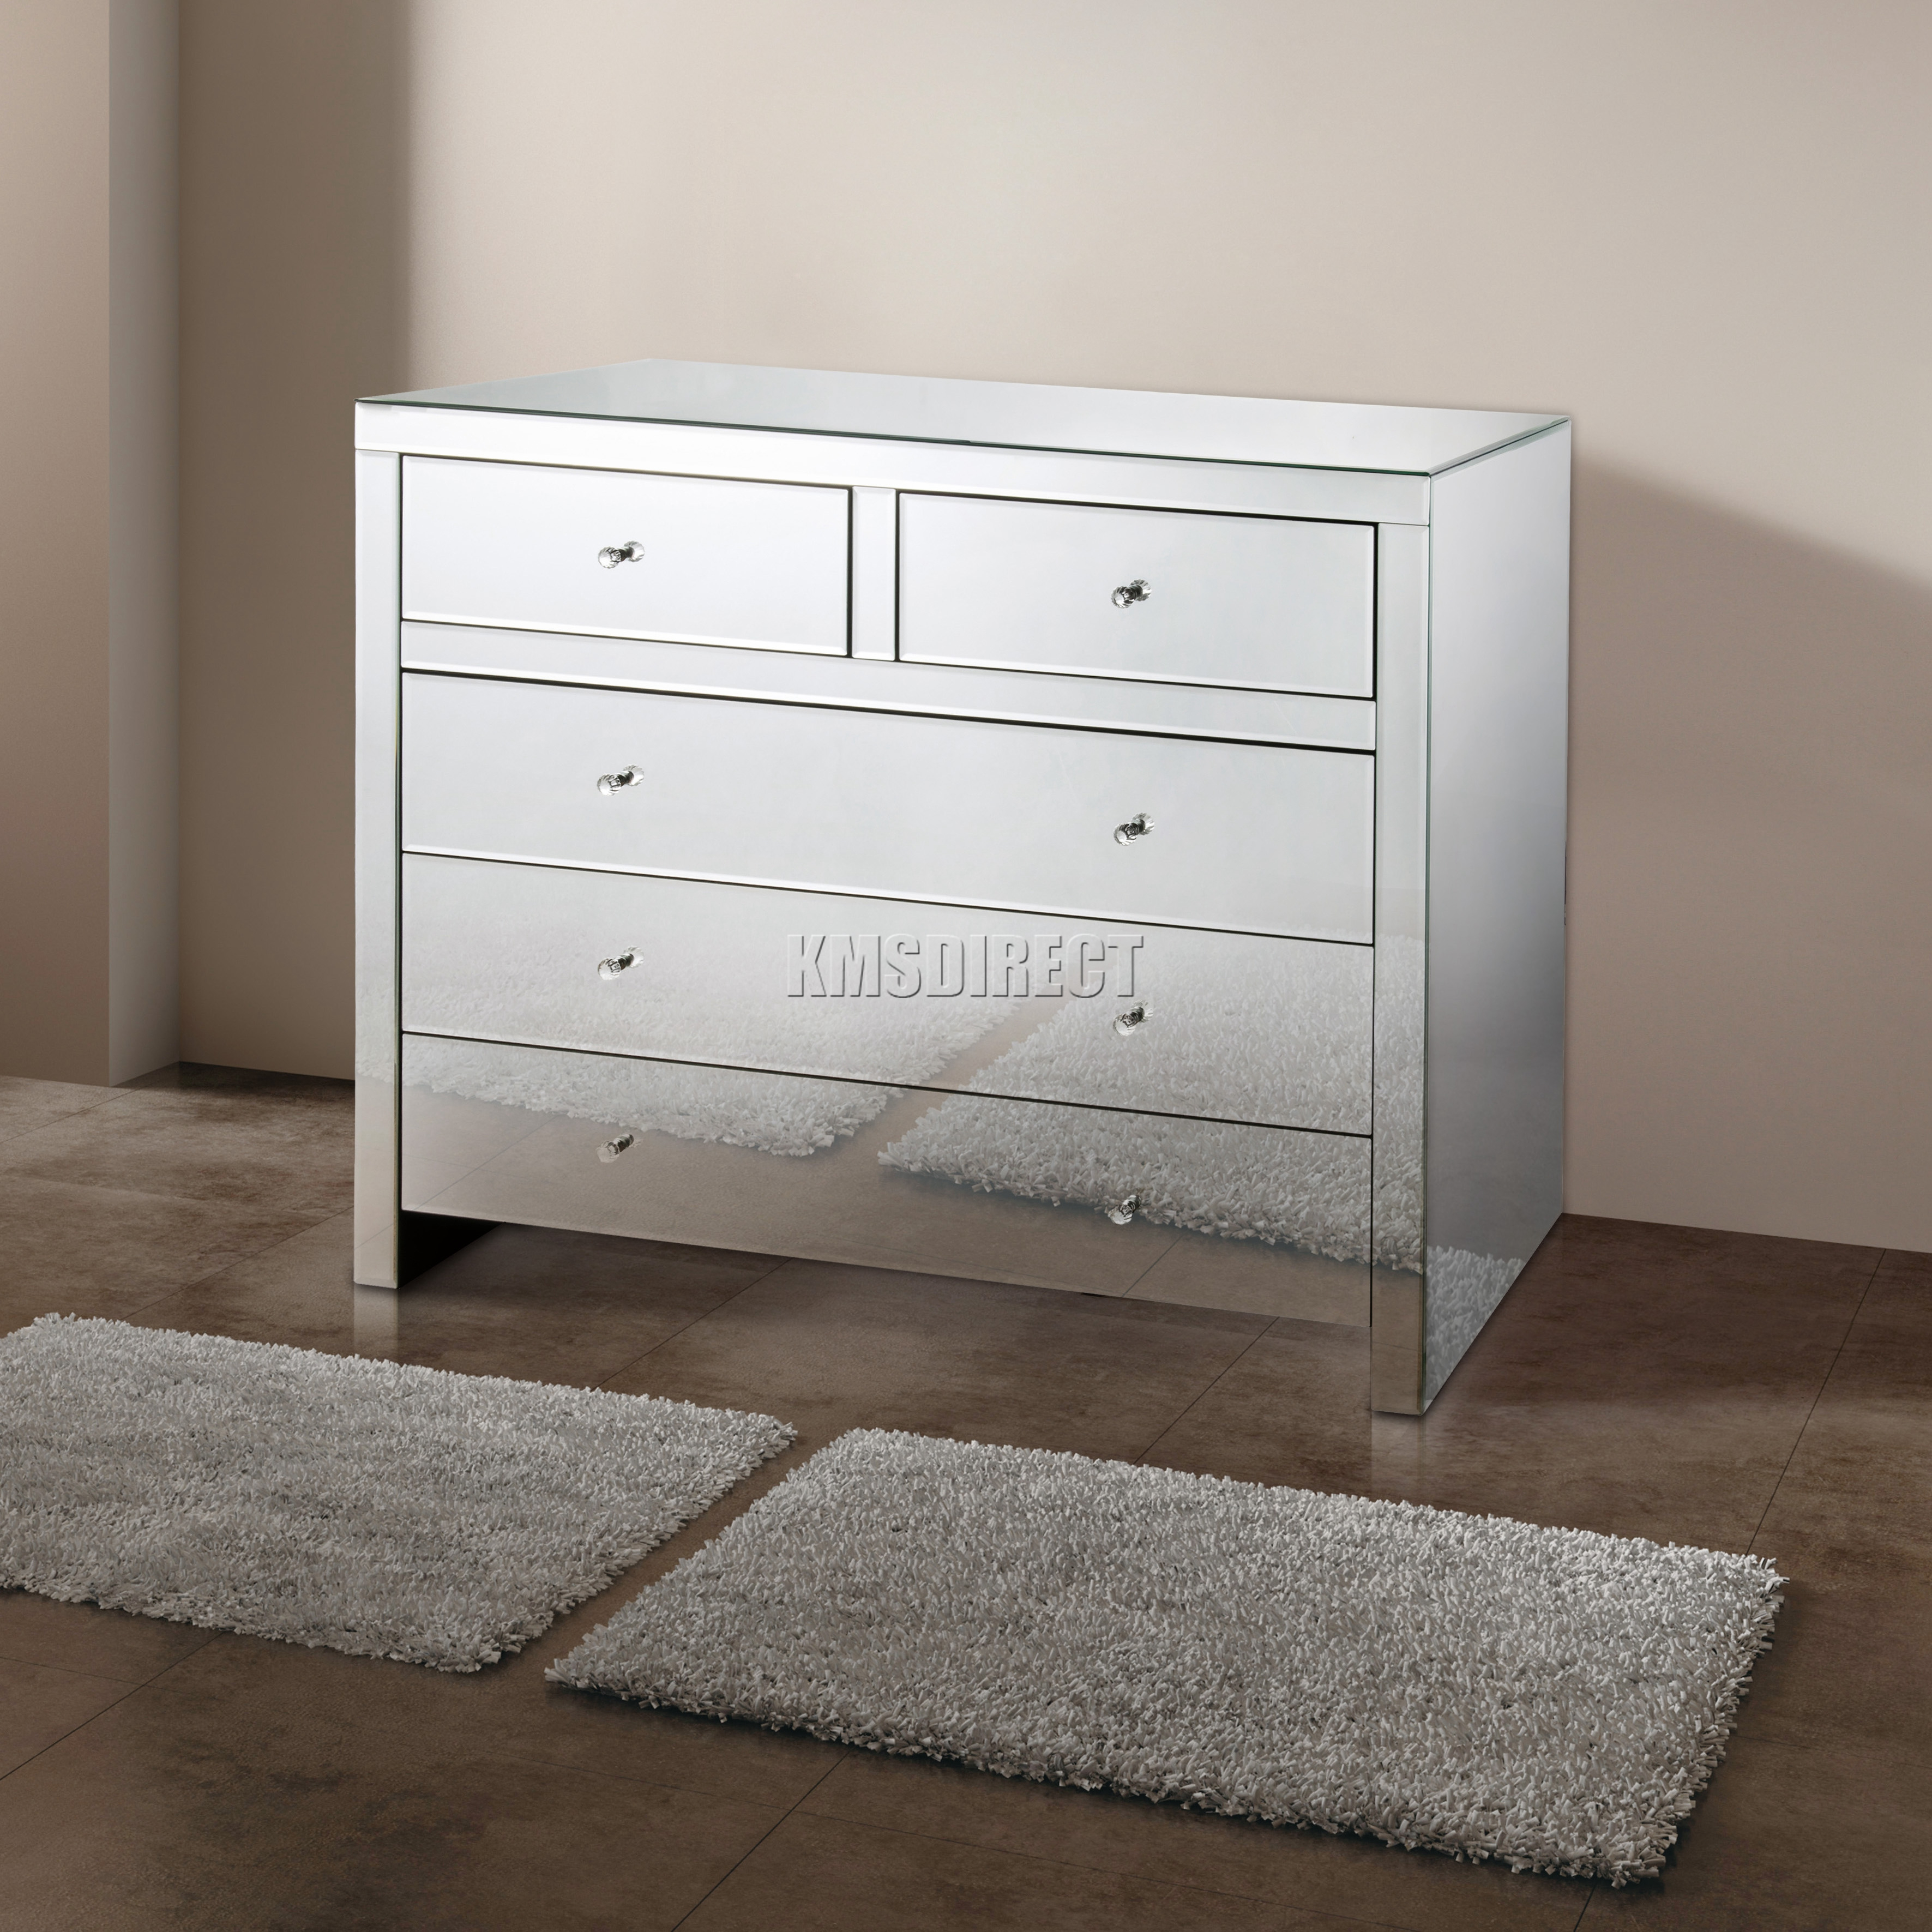 Foxhunter Mirrored Furniture Glass With Drawer Chest Cabinet Table Bedroom New Ebay